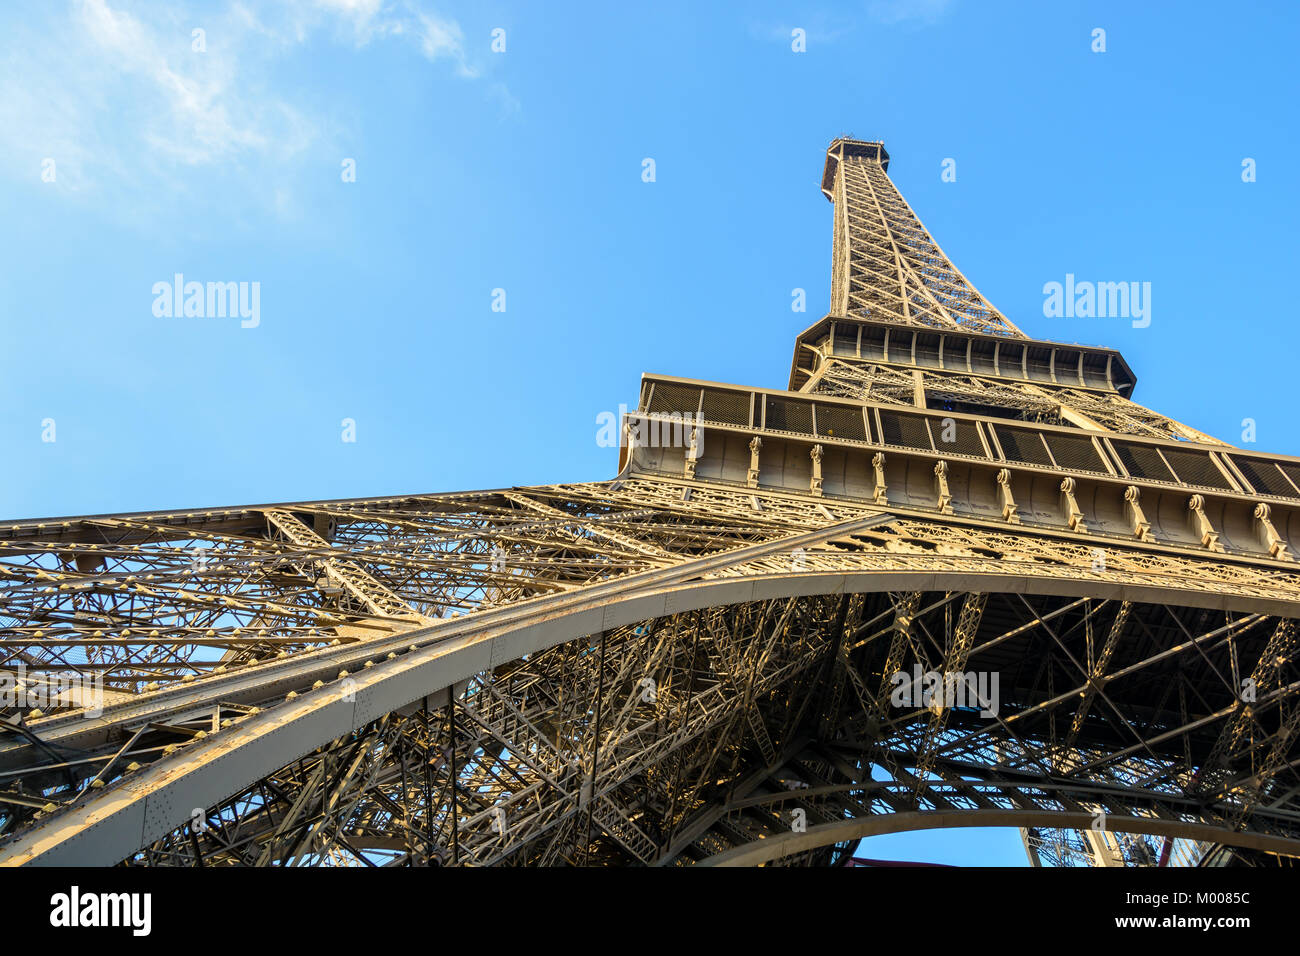 Dynamic low angle view of the Eiffel Tower against blue sky. - Stock Image